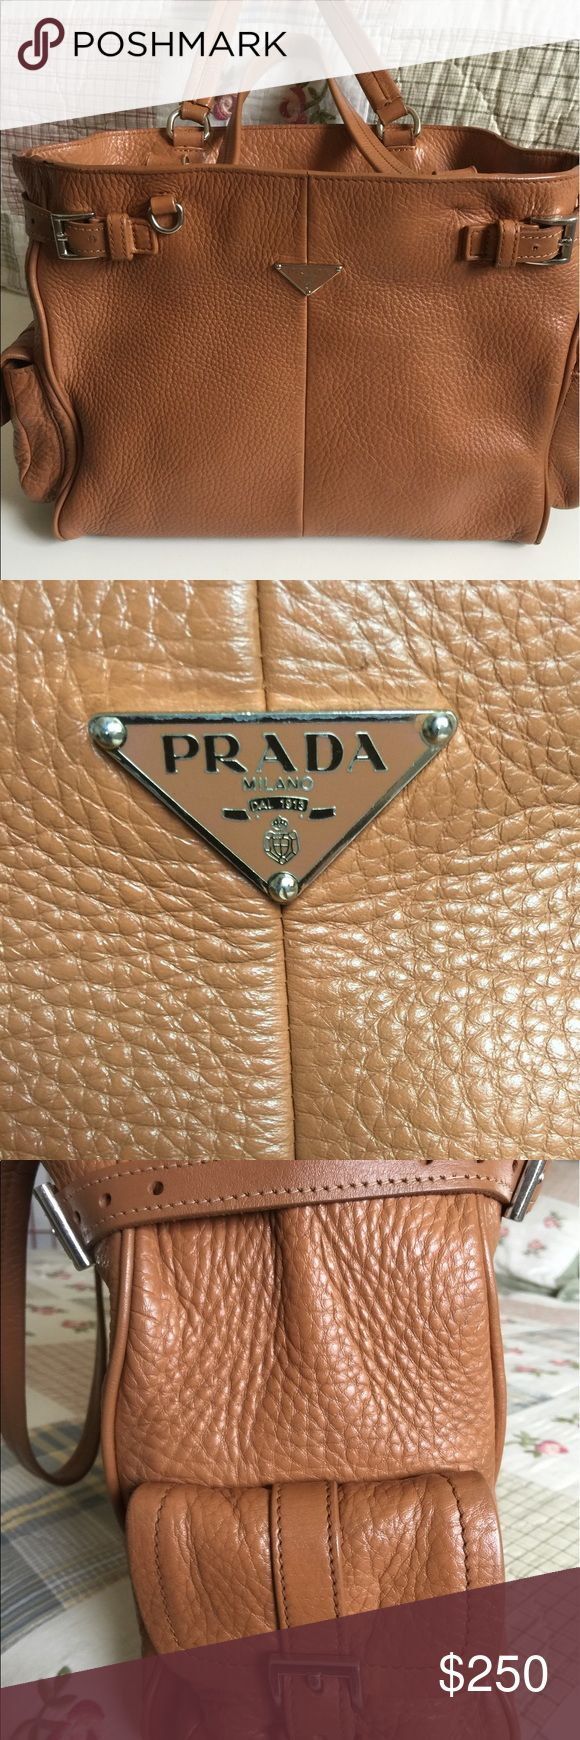 Prada tote bag Selling vintage Prada tote bag. Genuine leather. Authentic. Shows signs of wear. Please look at pictures carefully. Stain on inside of purse. Loose stitches on edge close to strap. Otherwise, great condition. Price is firm. Prada Bags Totes